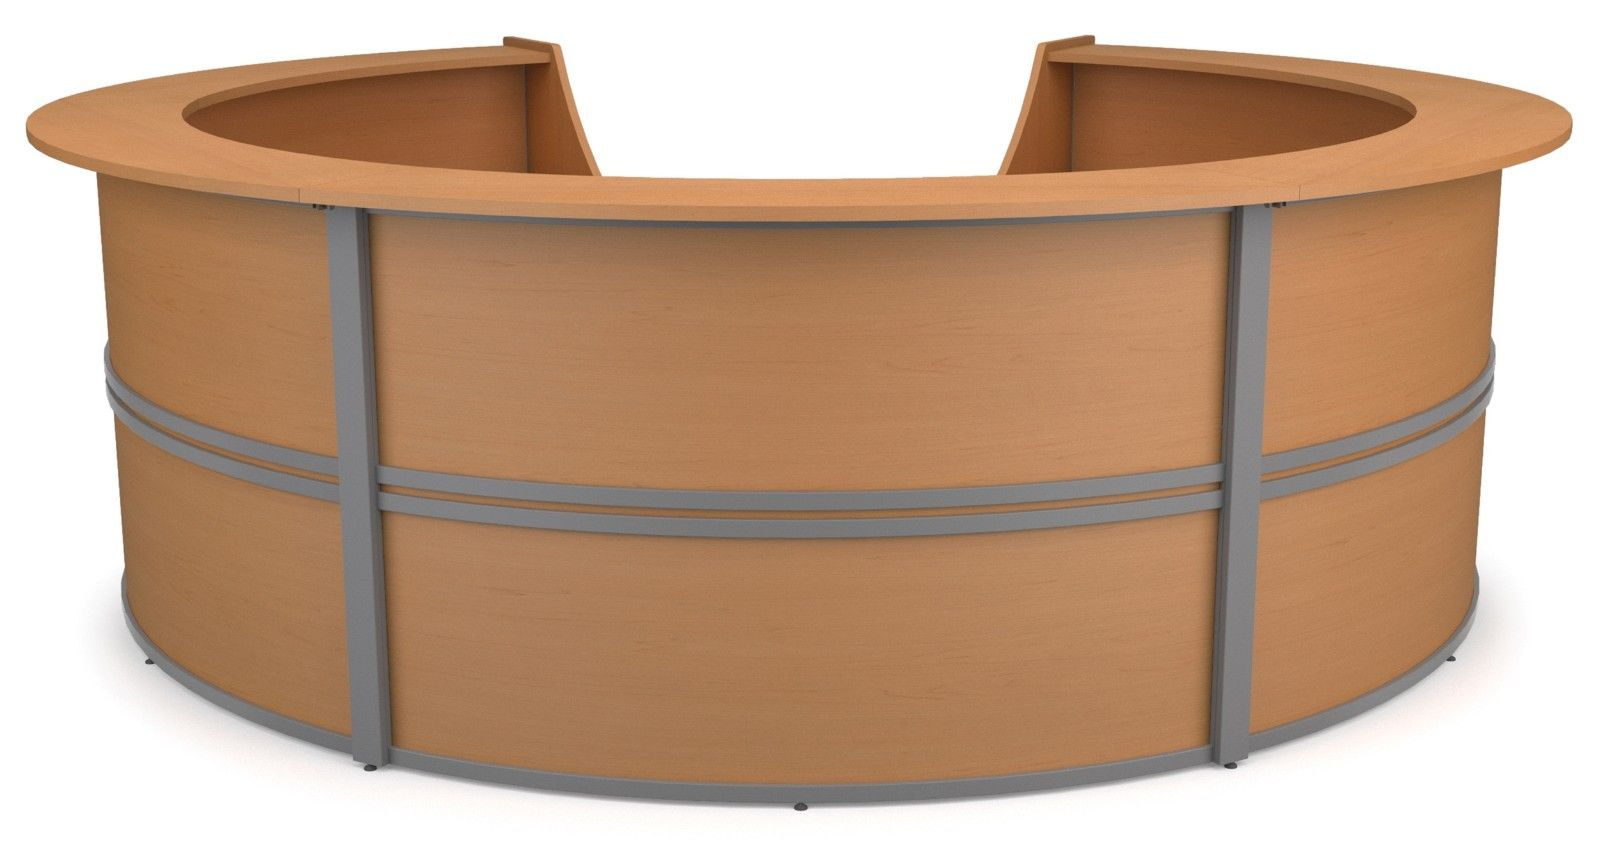 #39 - Marque 5-Unit Reception Station in Maple Finish - Circular Reception Front Desk